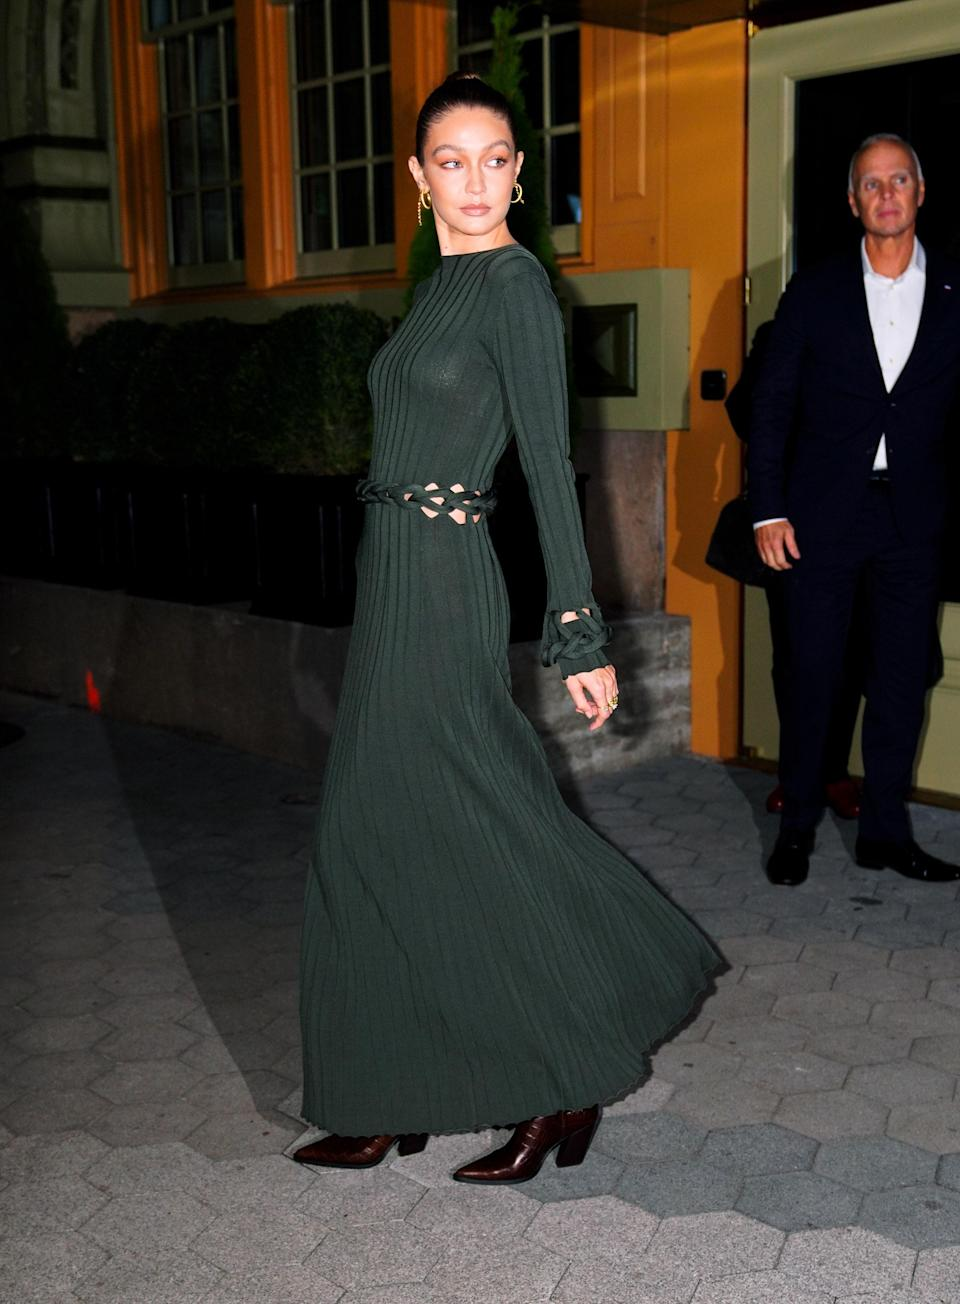 Gigi attended the CFDA / Vogue Fashion Fund 2019 Awards wearing this green Dion Lee dress.